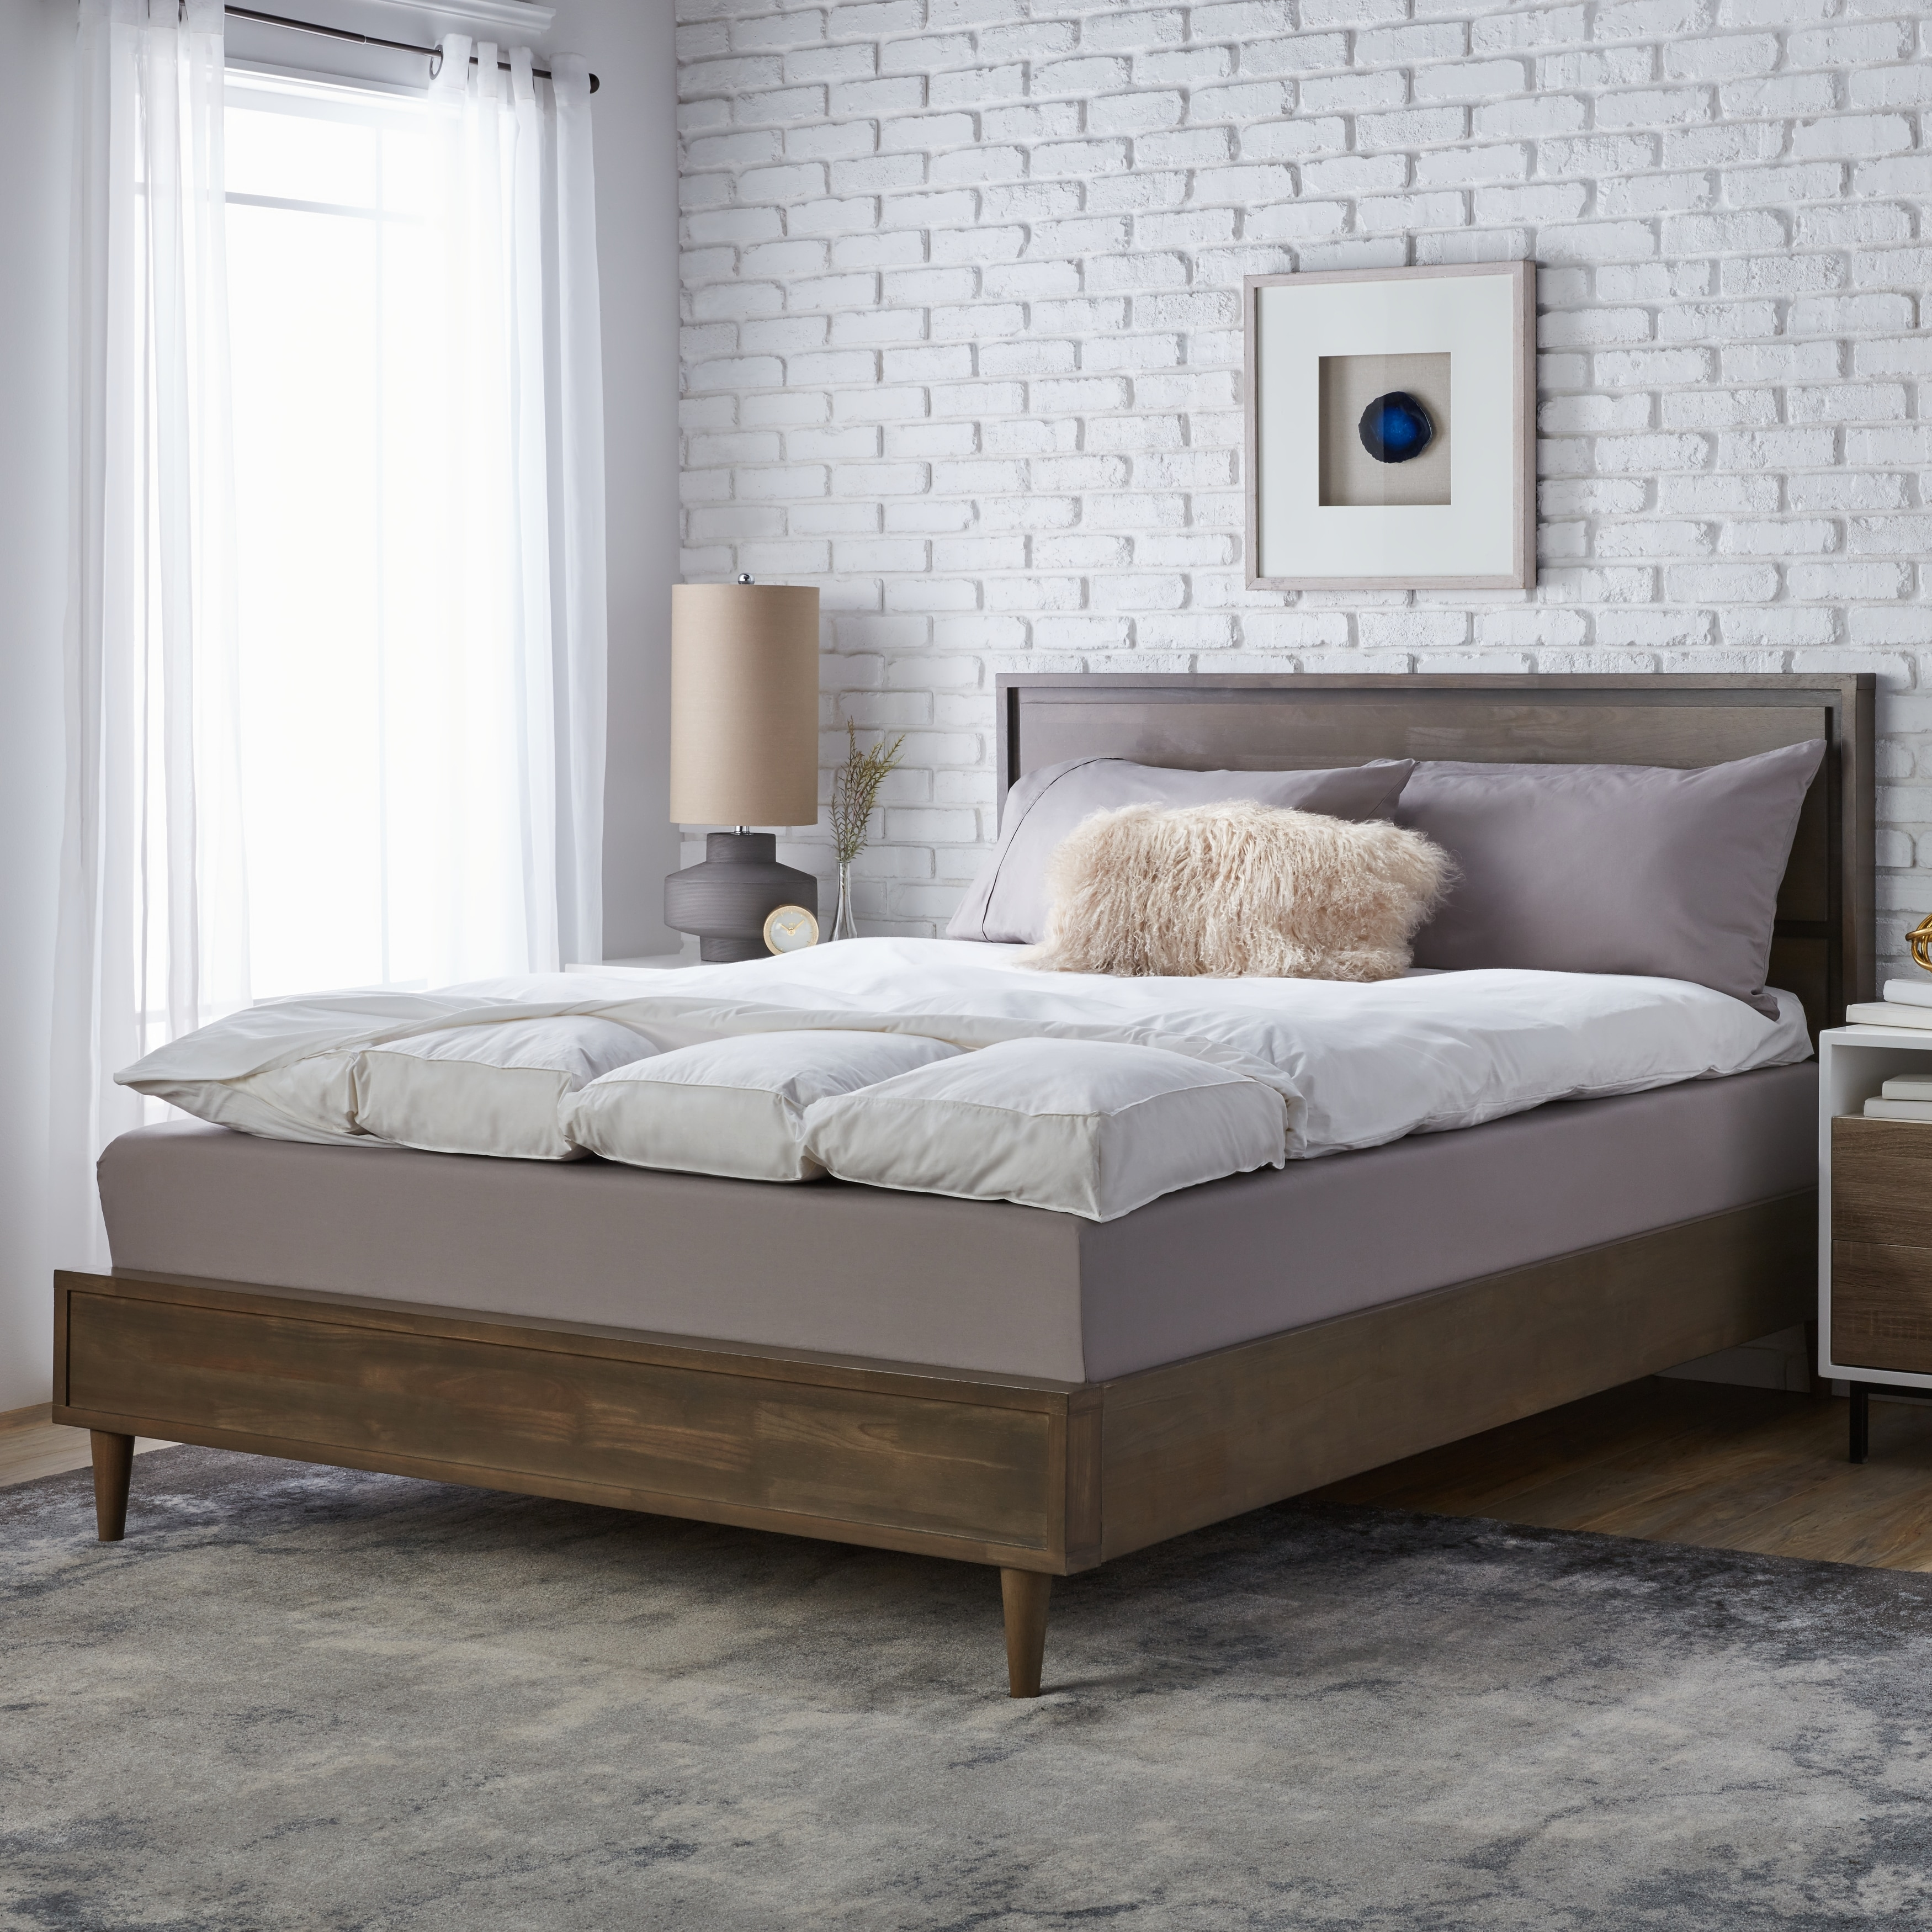 Snooze Single Beds Hang And Snooze Bedroom Furniture Indiepedia Org